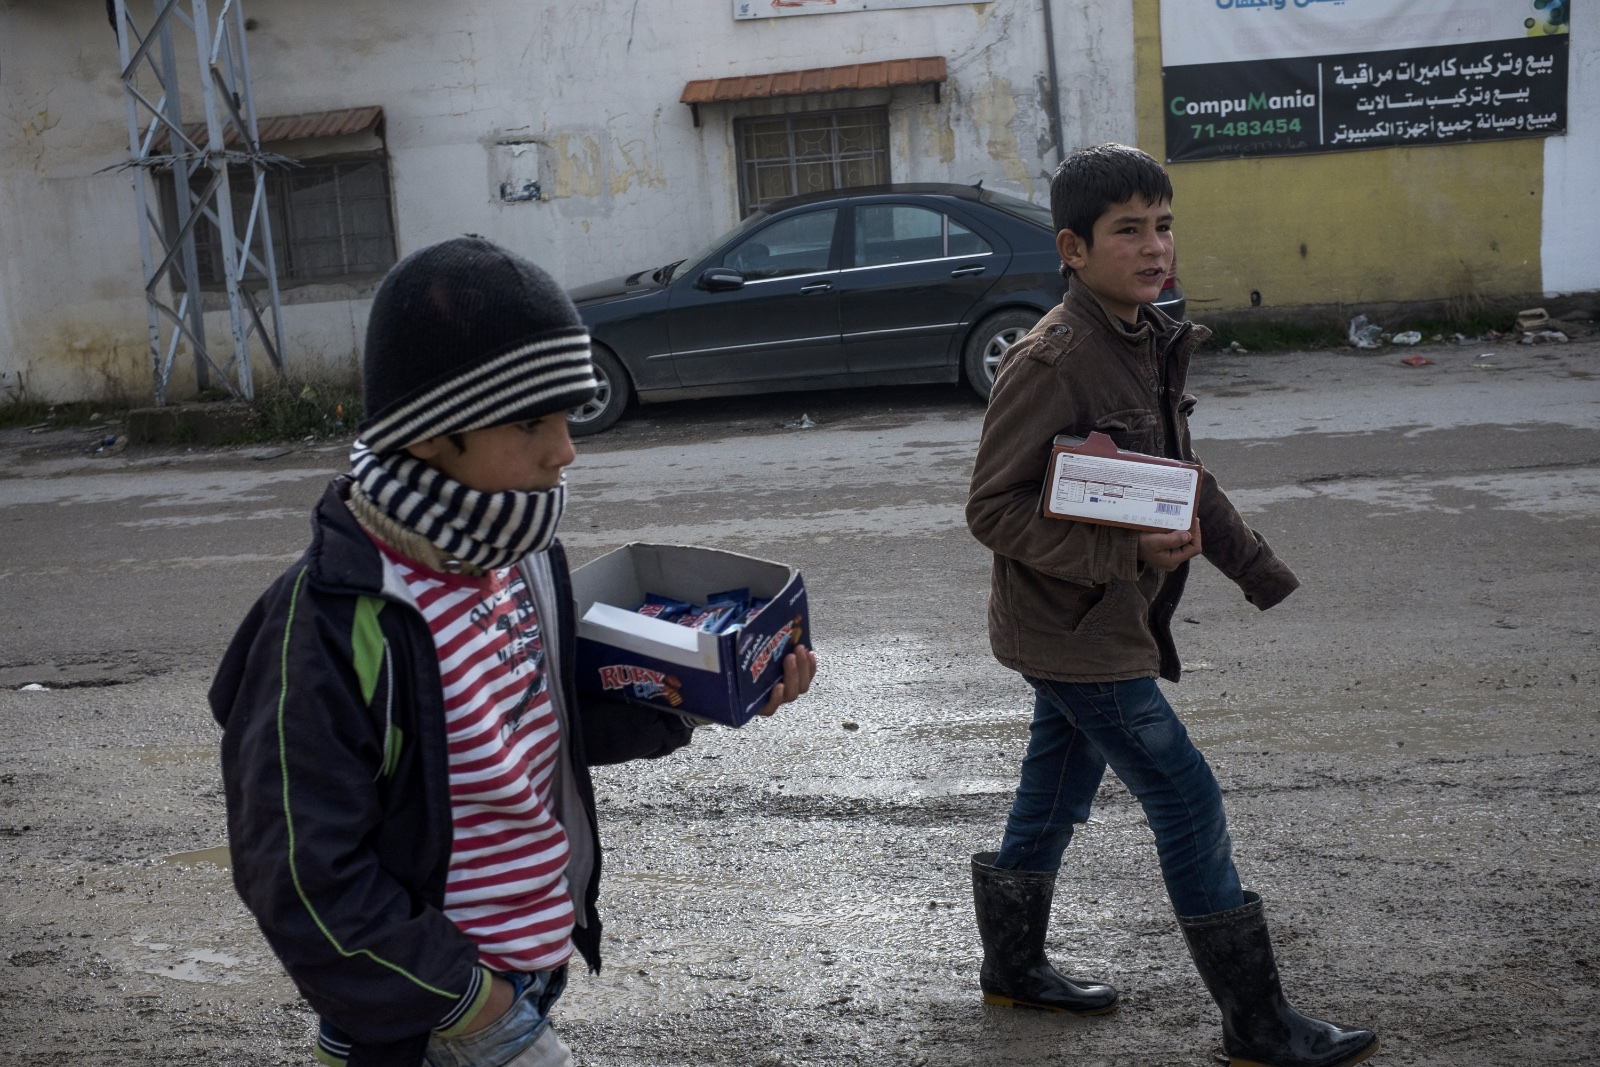 Mahmut (left), 8, a Syrian refugee from Homs, walks to the main street to sell biscuits with his brother, Khaled (right), 12, in the Bekaa Valley. (Christopher Lee/GroundTruth)